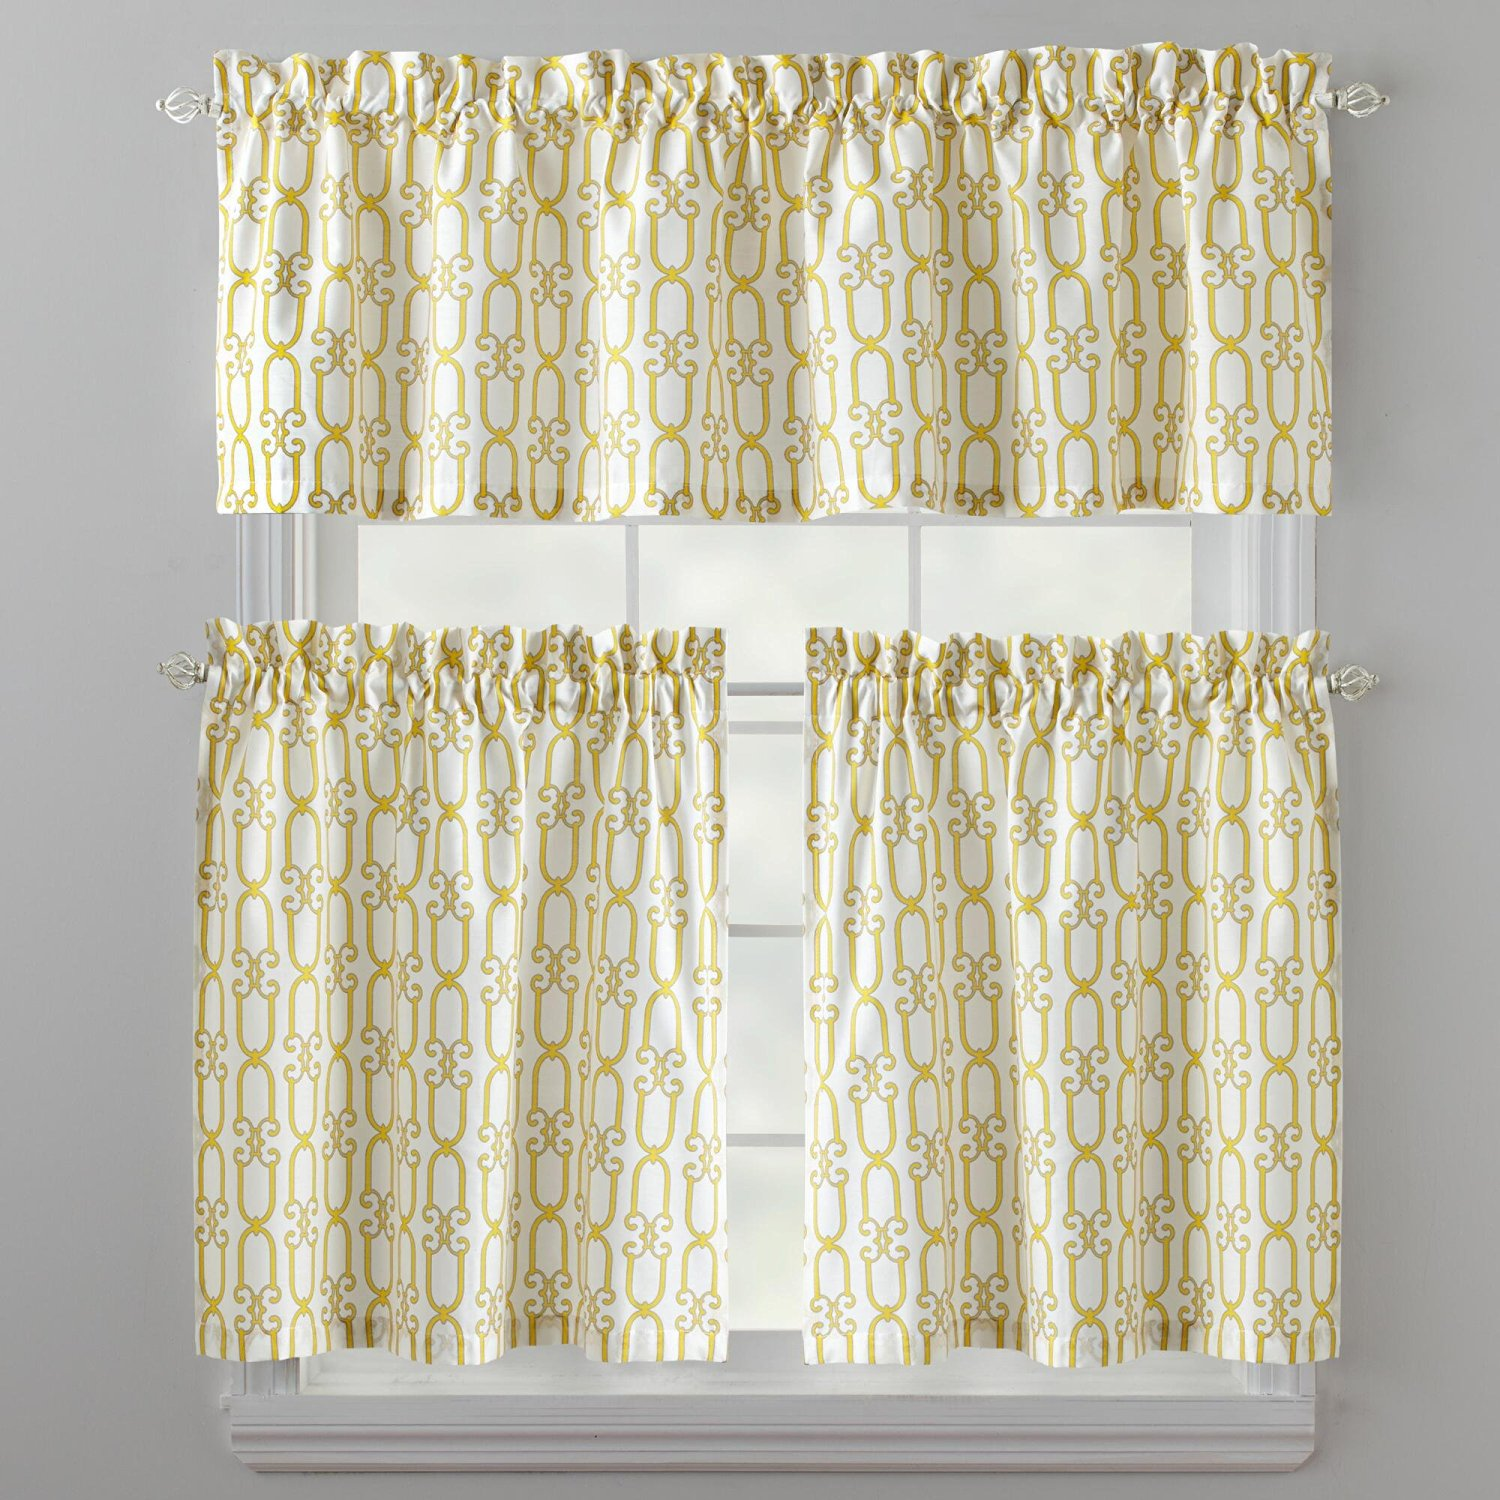 curtains and trends cheap curtain room cope kitchen cheaper tassel sofa anthropologie valances pom curtainsrhpinterestcom but like bedrooms rhcamelssalecom modern target